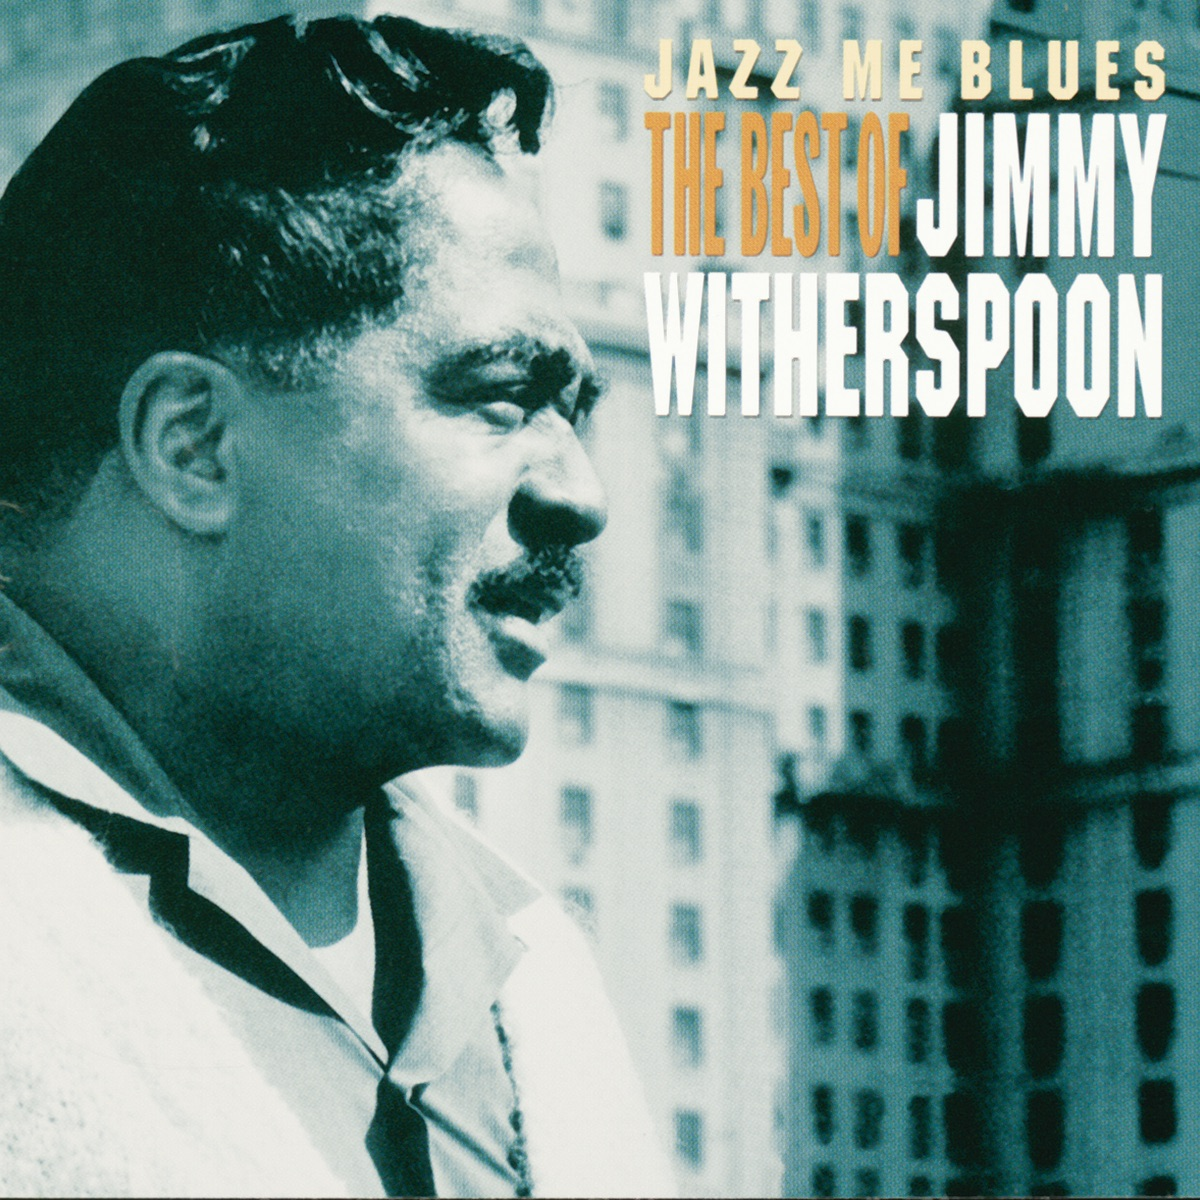 Jazz Me Blues - The Best of Jimmy Witherspoon